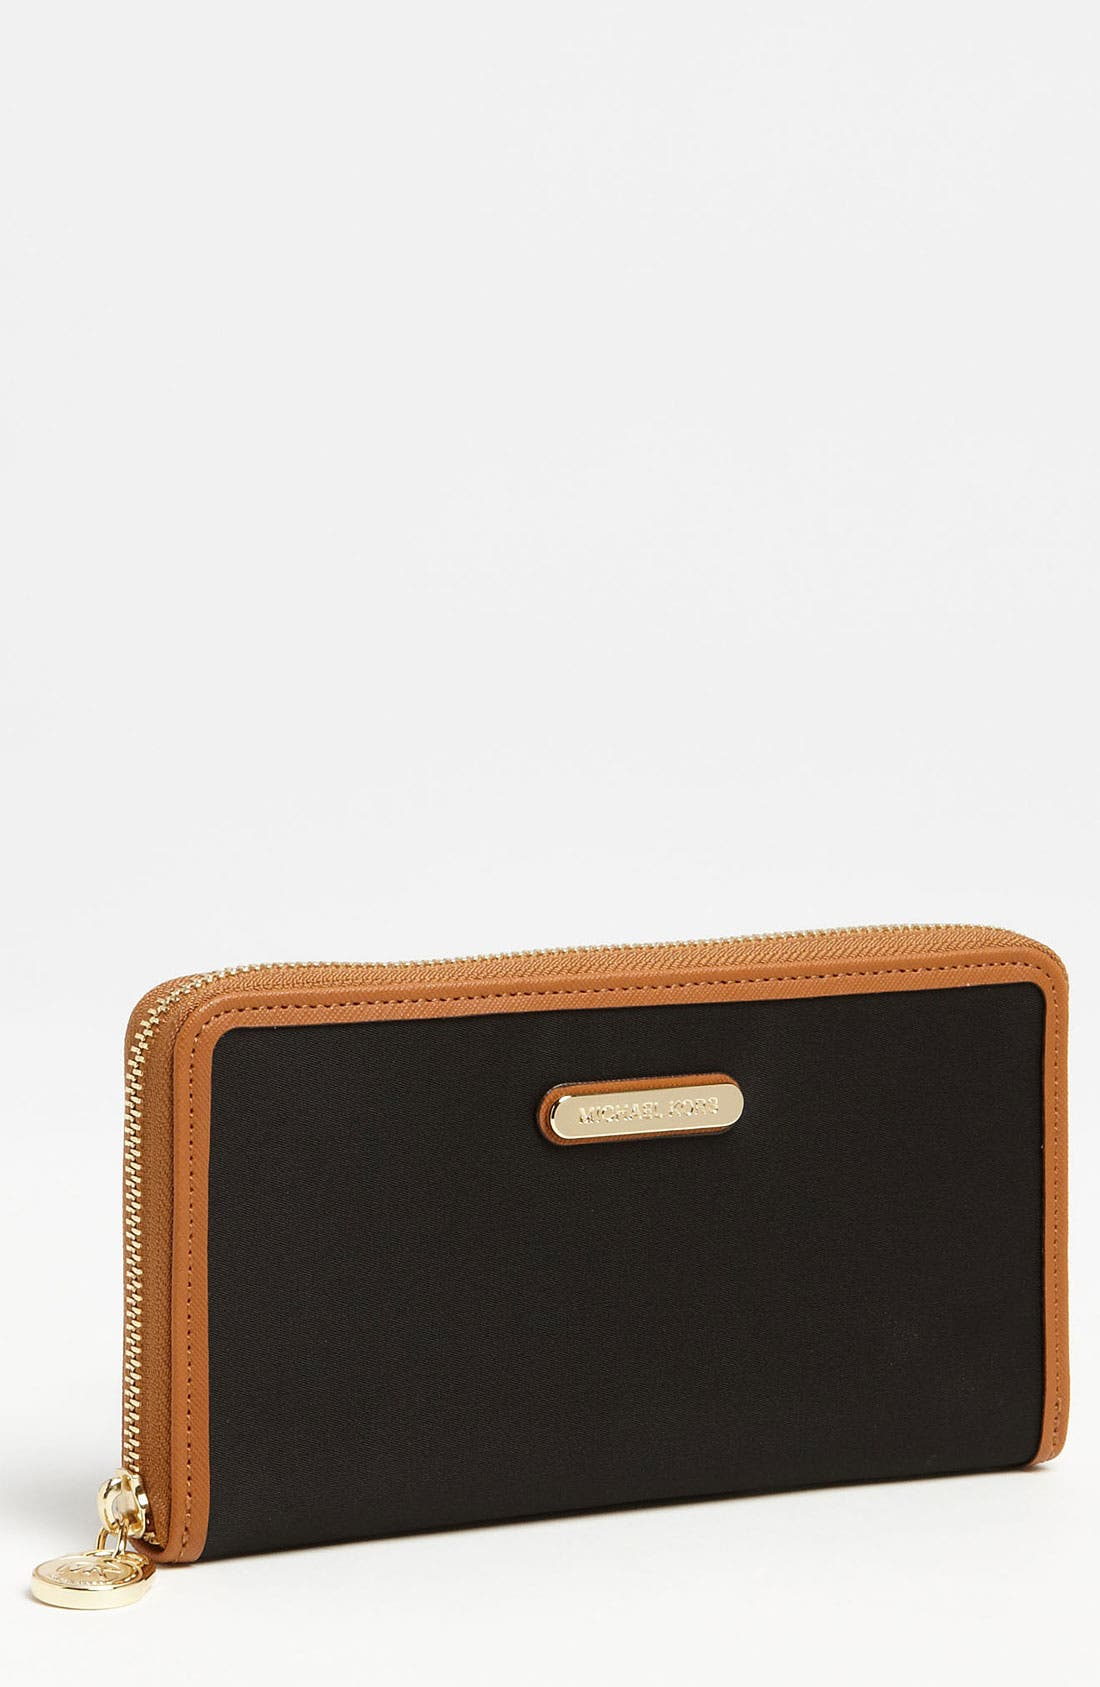 Main Image - MICHAEL Michael Kors 'Kempton' Zip Around Continental Wallet